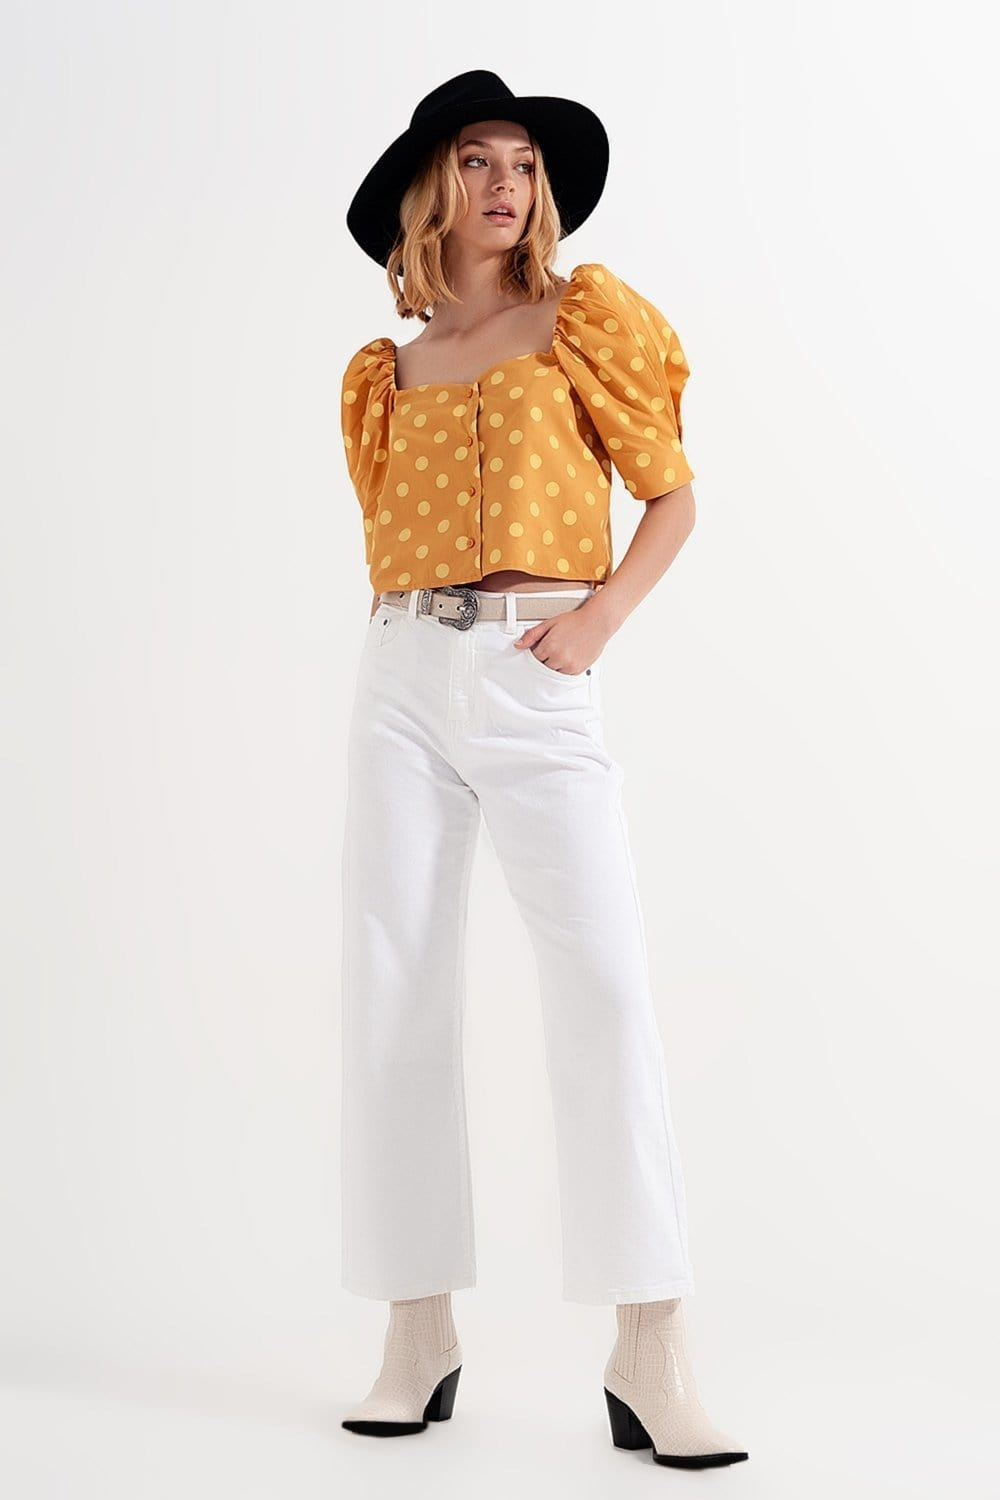 Polka Dot Top with Puffed Sleeves and Square Neckline in Yellow - Himelhoch's